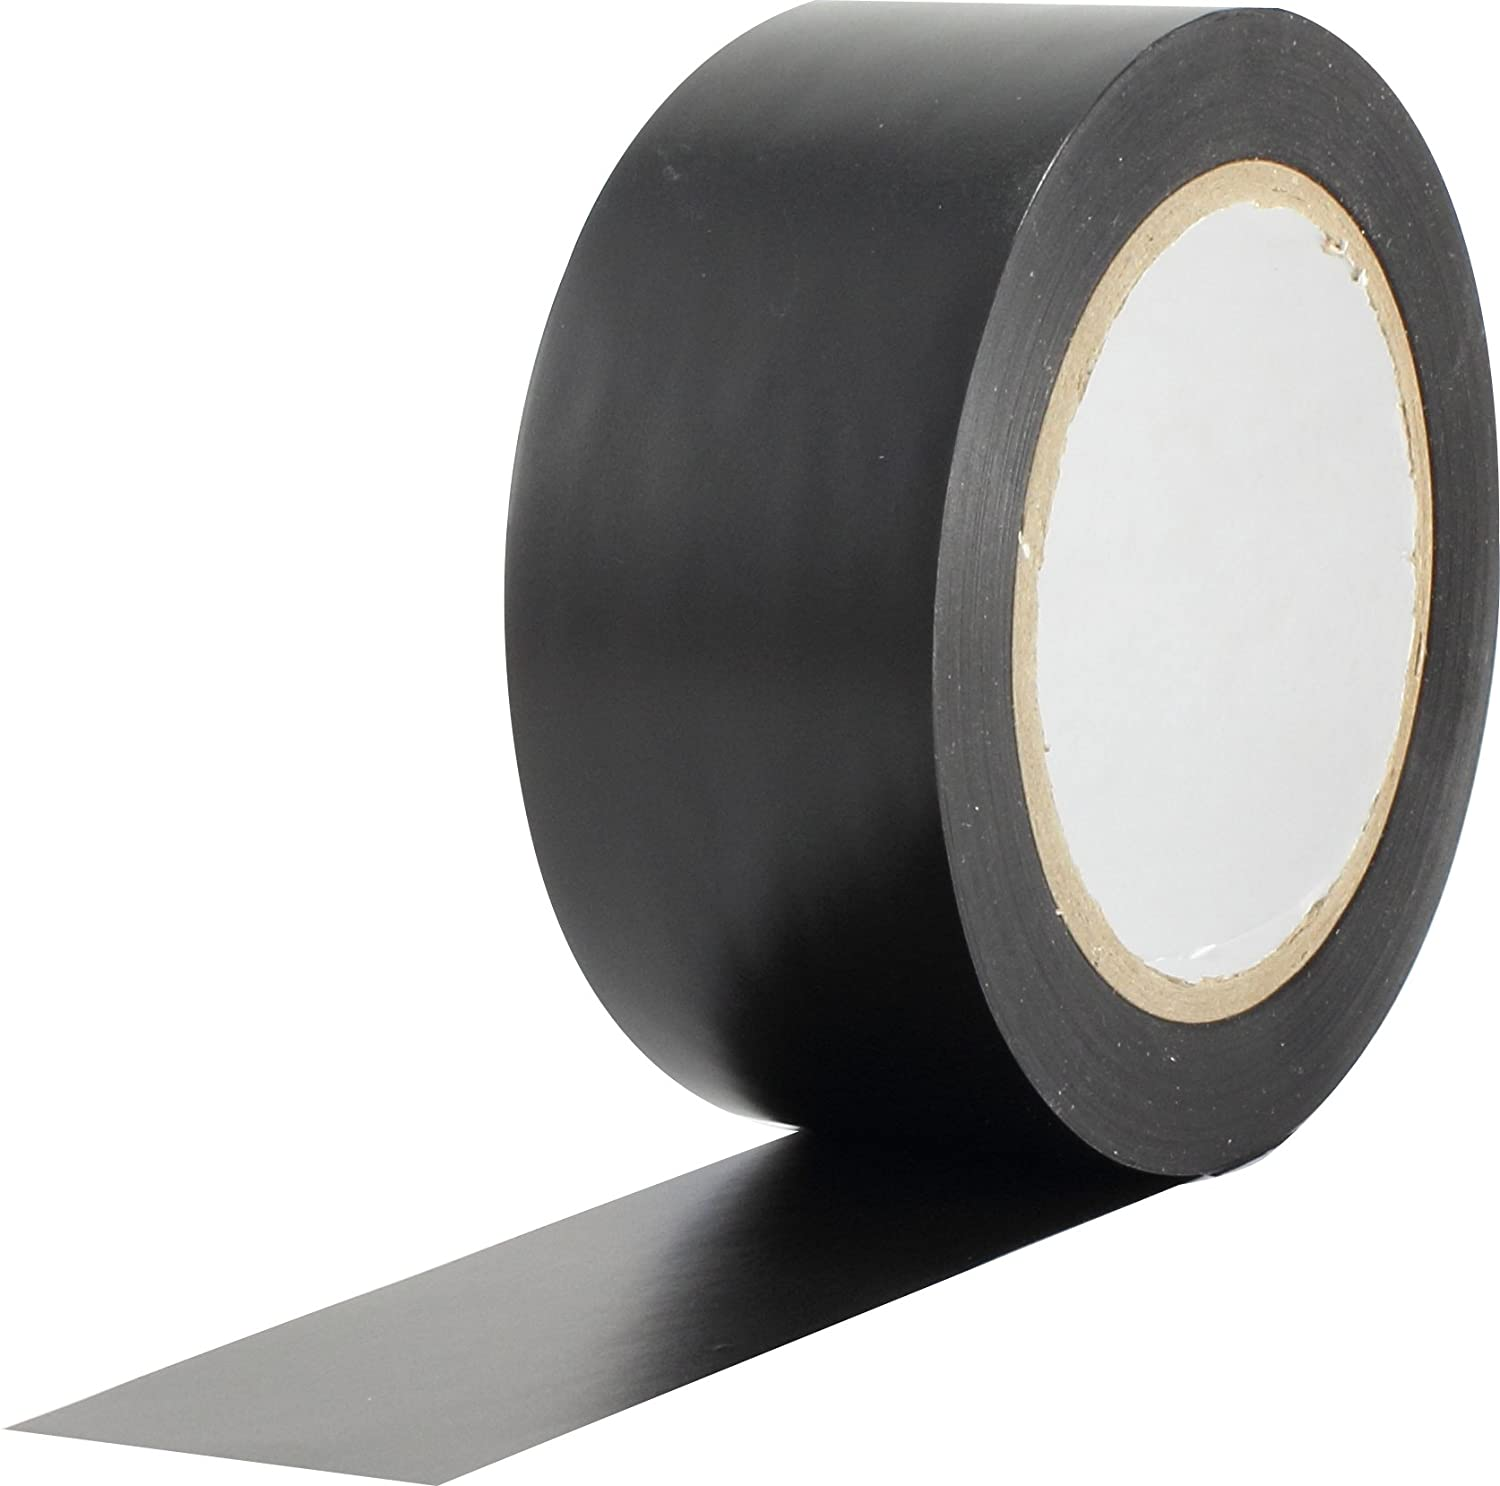 ProTapes Pro 50 Premium Vinyl Safety Marking and Dance Floor Splicing Tape, 6 Mils Thick, 36 Yds Length X 2' Width, Black (Pack of 1) 36 Yds Length X 2 Width ProTapes & Specialties 50-6-2x36-B